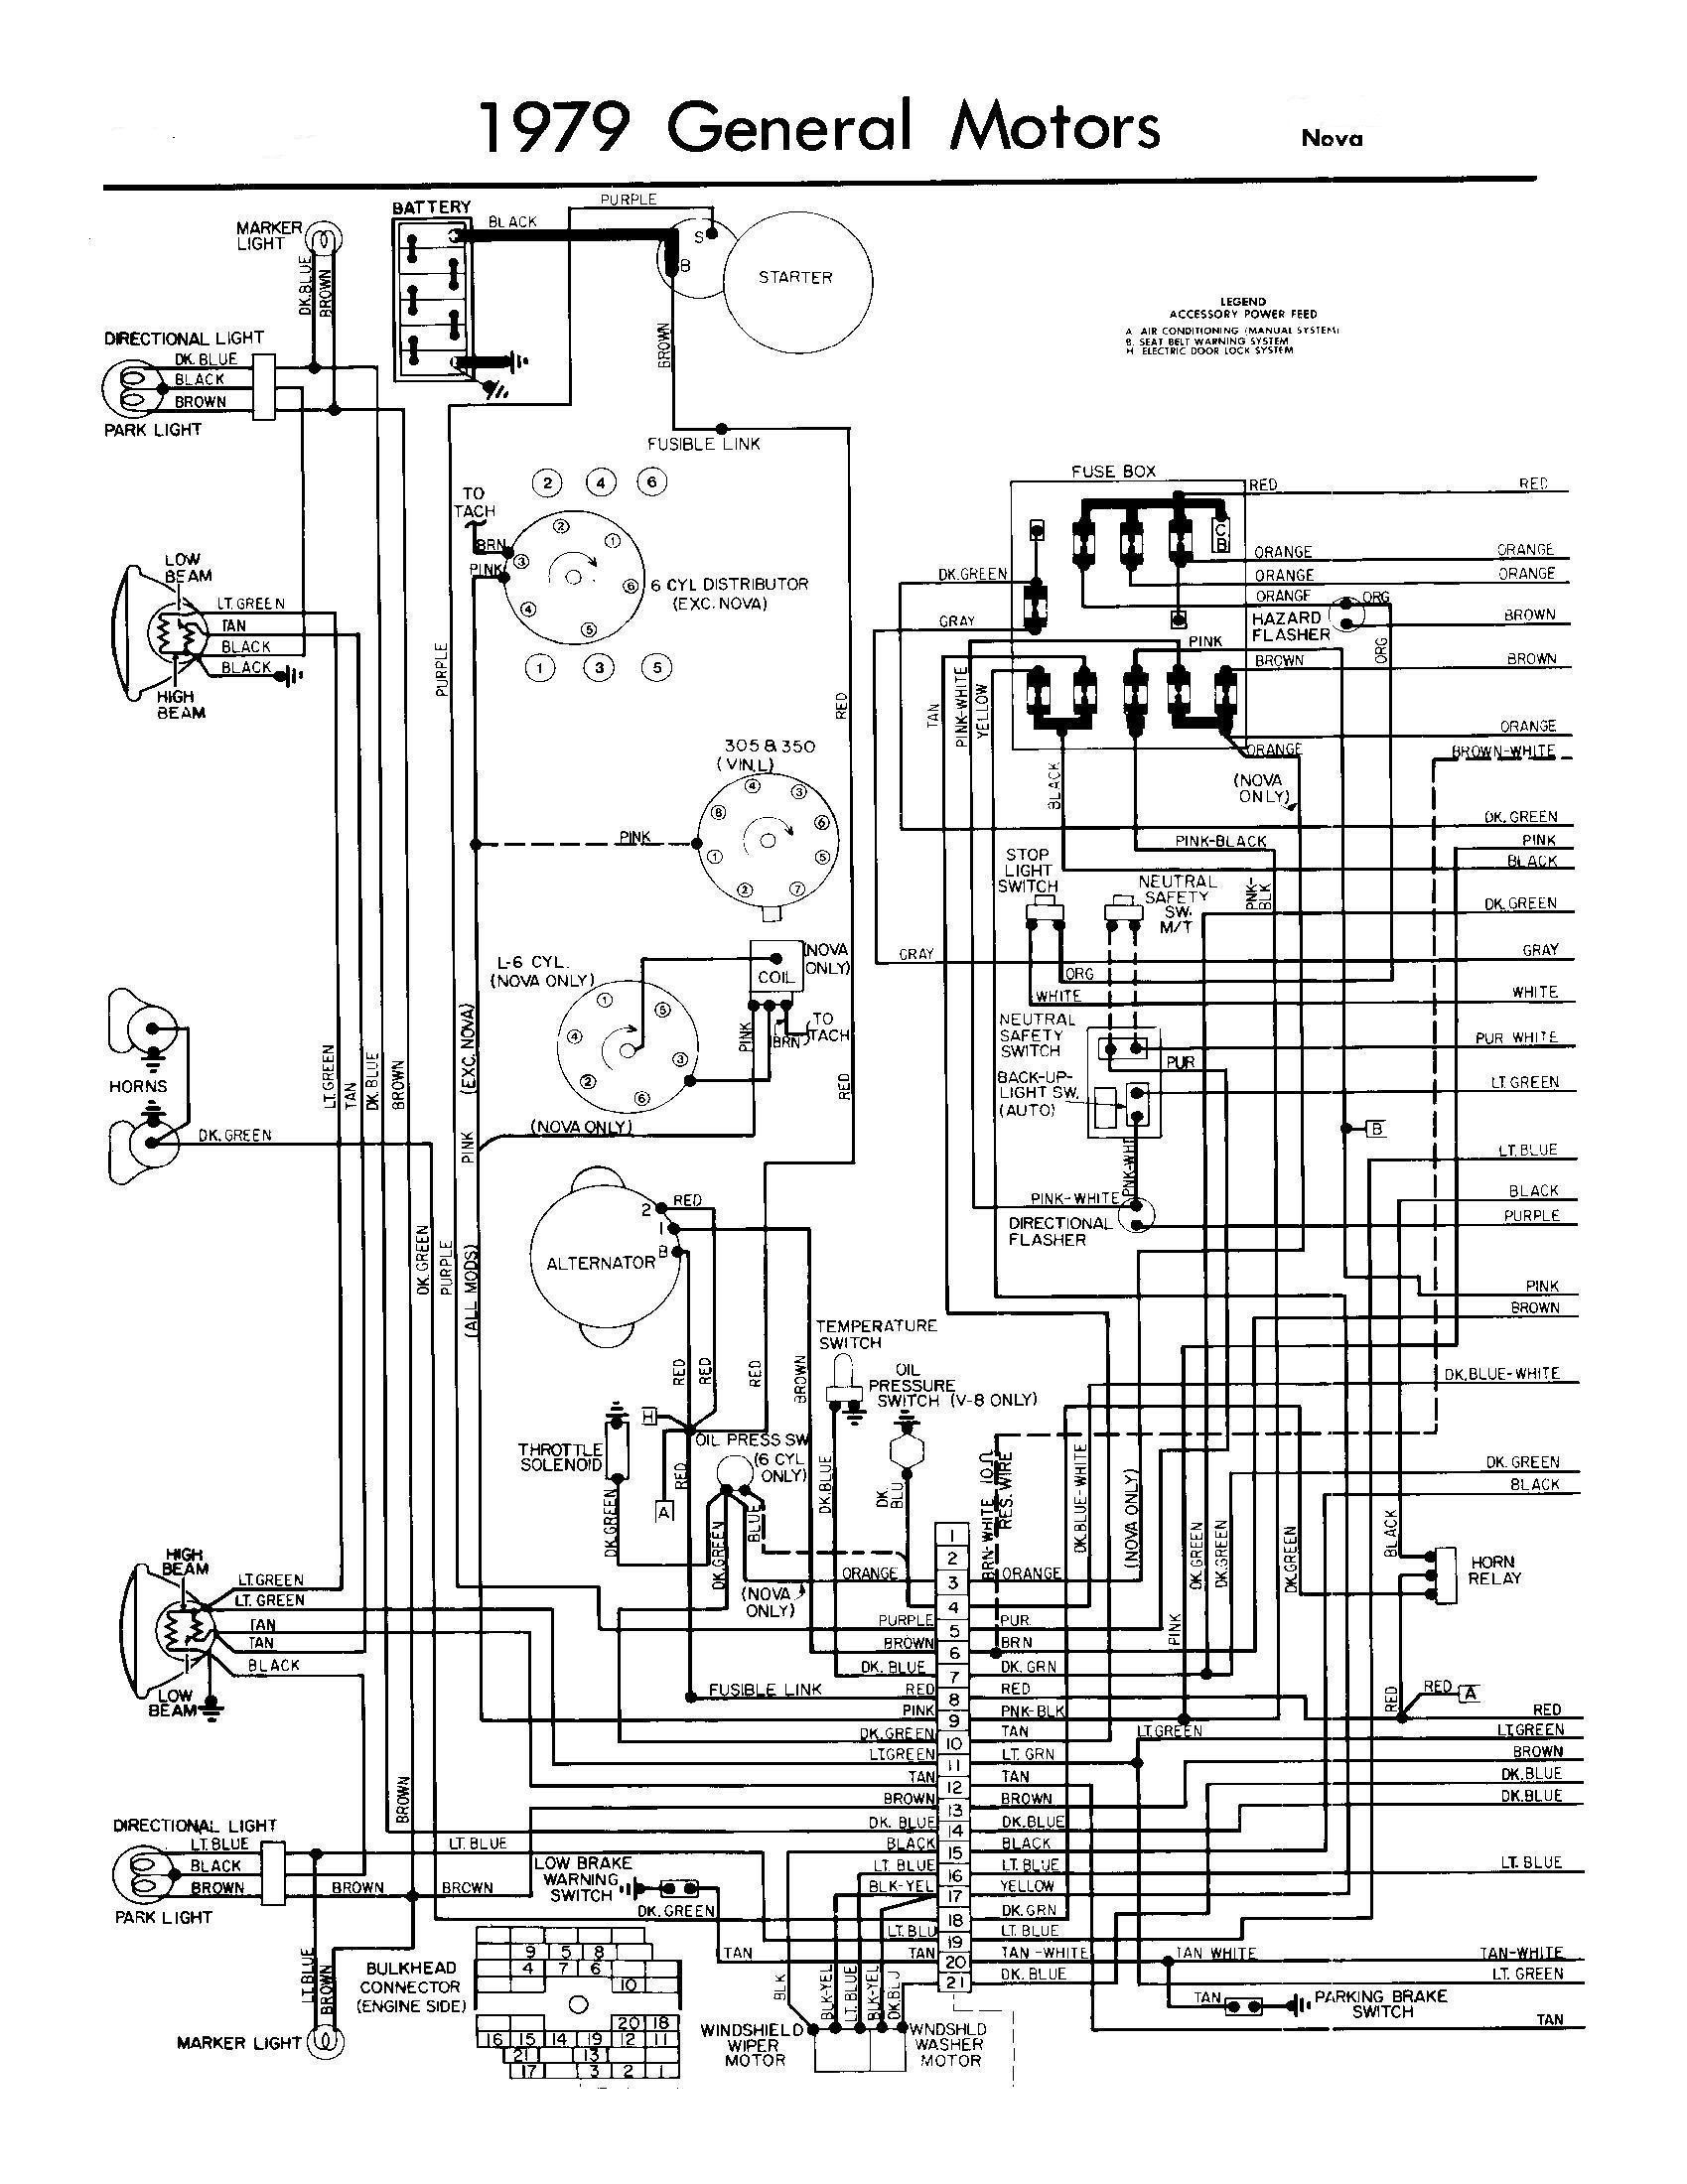 1975 Gmc Truck Engine Compartment Diagram | Wiring Diagram  Chevy C Engine Bay Wiring Diagram on 85 chevy wiring diagram, 1985 chevy c10 engine, 1985 chevrolet truck diagram, 1985 chevy fuse box diagram, 1985 chevy truck fuse box, 1985 chevy truck wiring harness, 1985 chevy suburban belt diagram, 1985 dodge dakota wiring diagram, 1985 chevy c10 transmission, 1999 mazda 626 wiring diagram, 1985 chevy c10 wheels, 1998 chevy venture wiring diagram, 1985 chevy c10 regulator, 1985 chevy c10 seats, 1985 chevy c10 electrical, 1985 chevy c10 carburetor, 63 chevy wiring diagram, 1985 chevy c10 frame, 1985 chevrolet wiring diagram, 1985 chevy c10 fan belt,